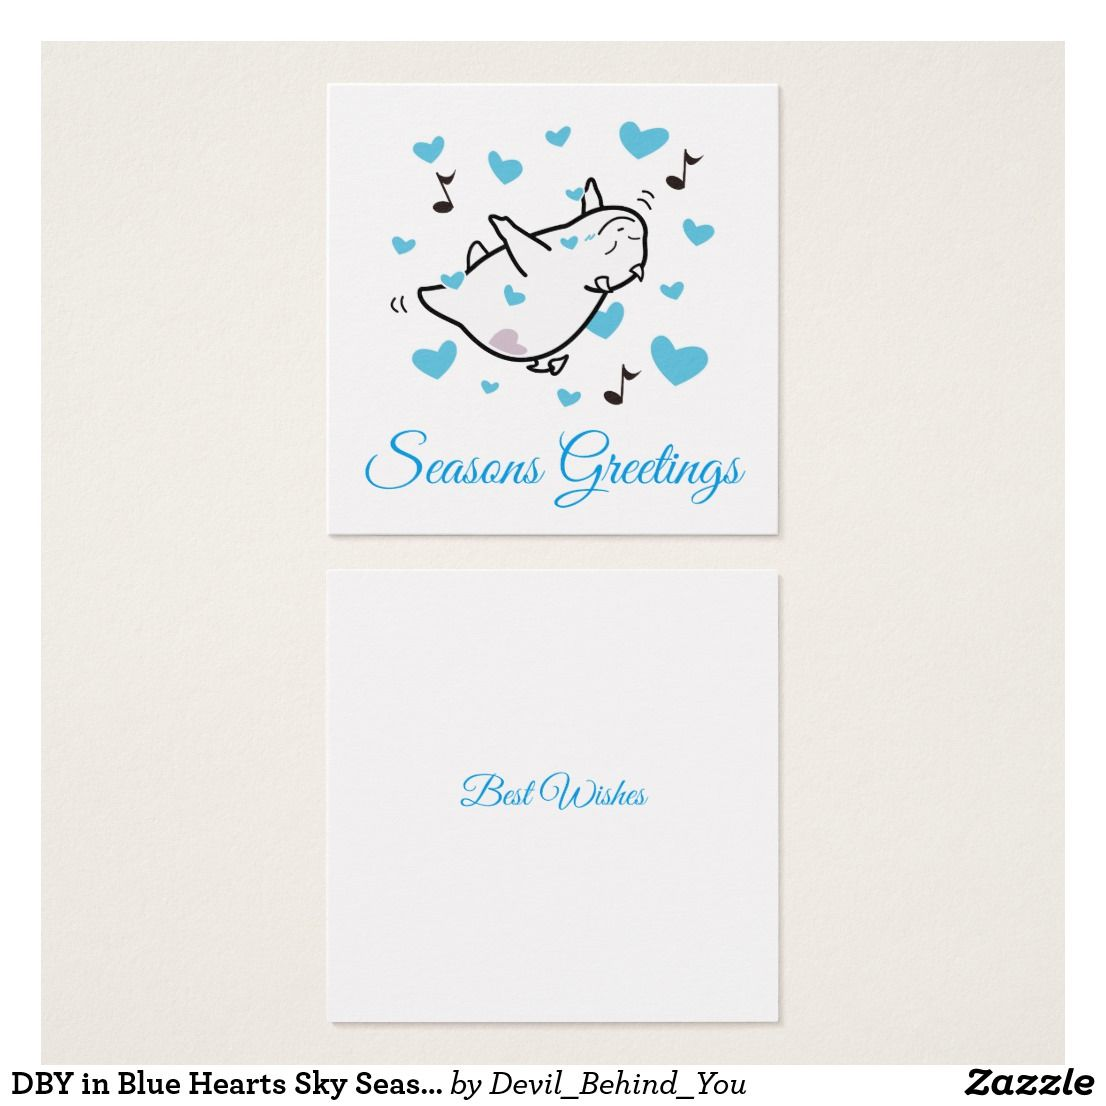 Dby In Blue Hearts Sky Seasons Greeting Square Business Card Dby